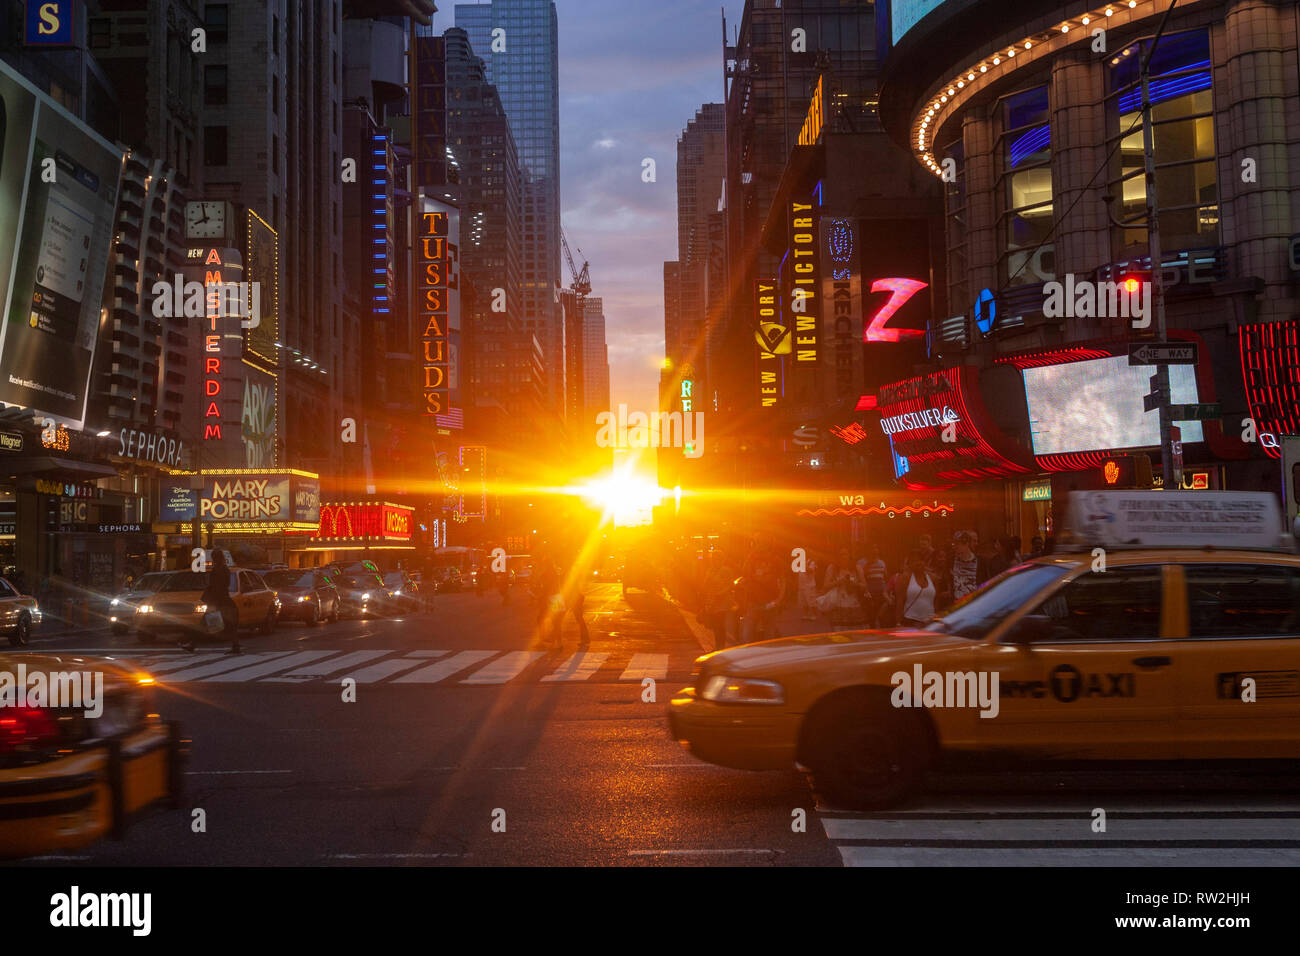 Yellow taxis in W 42nd St at sunset near Times Sq, Manhattan, New York City, USA - Stock Image